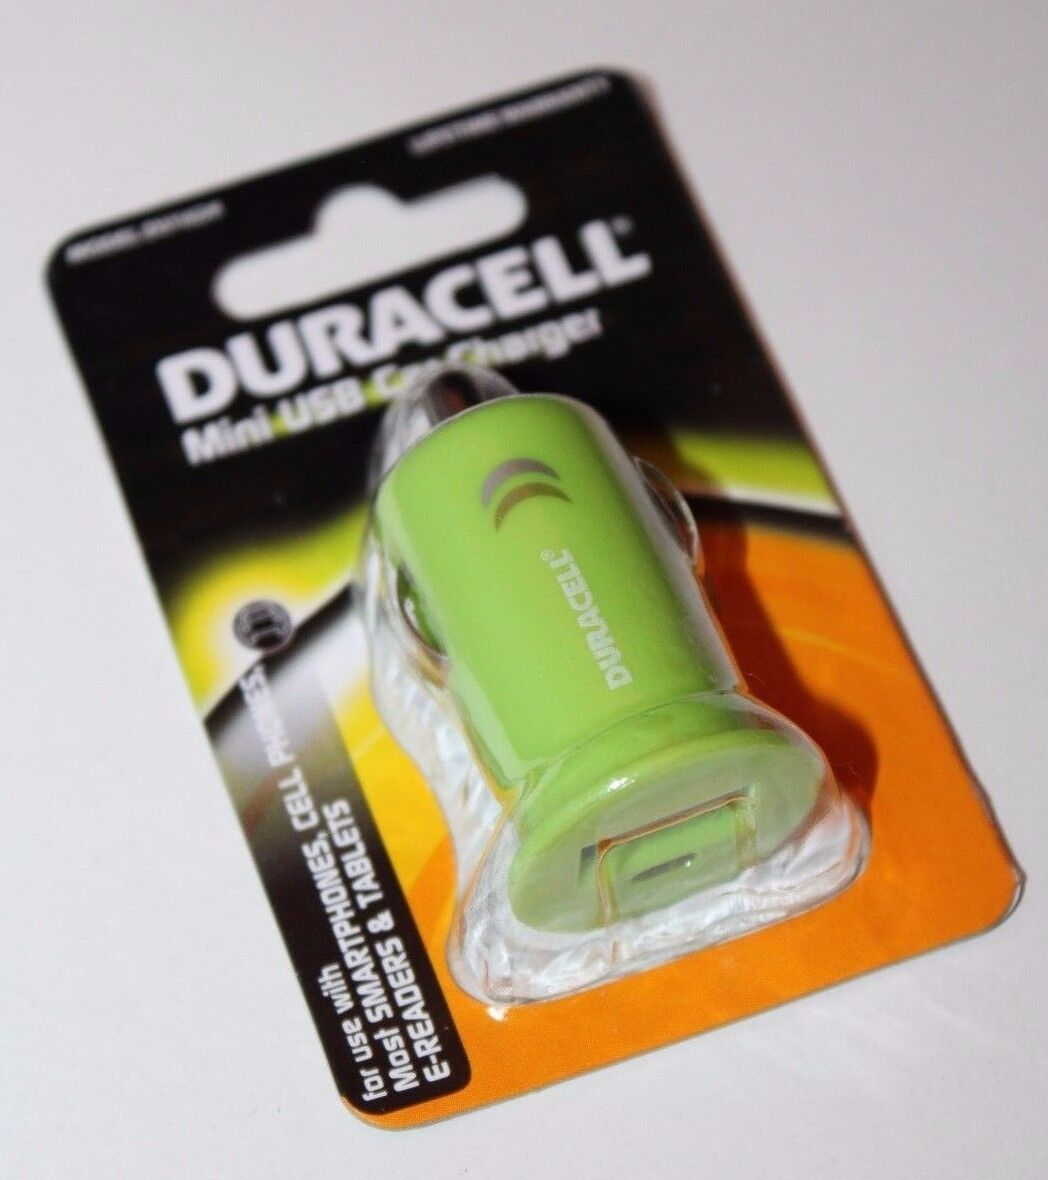 680988616242 UPC - Duracell Mini Usb Car Charger Green